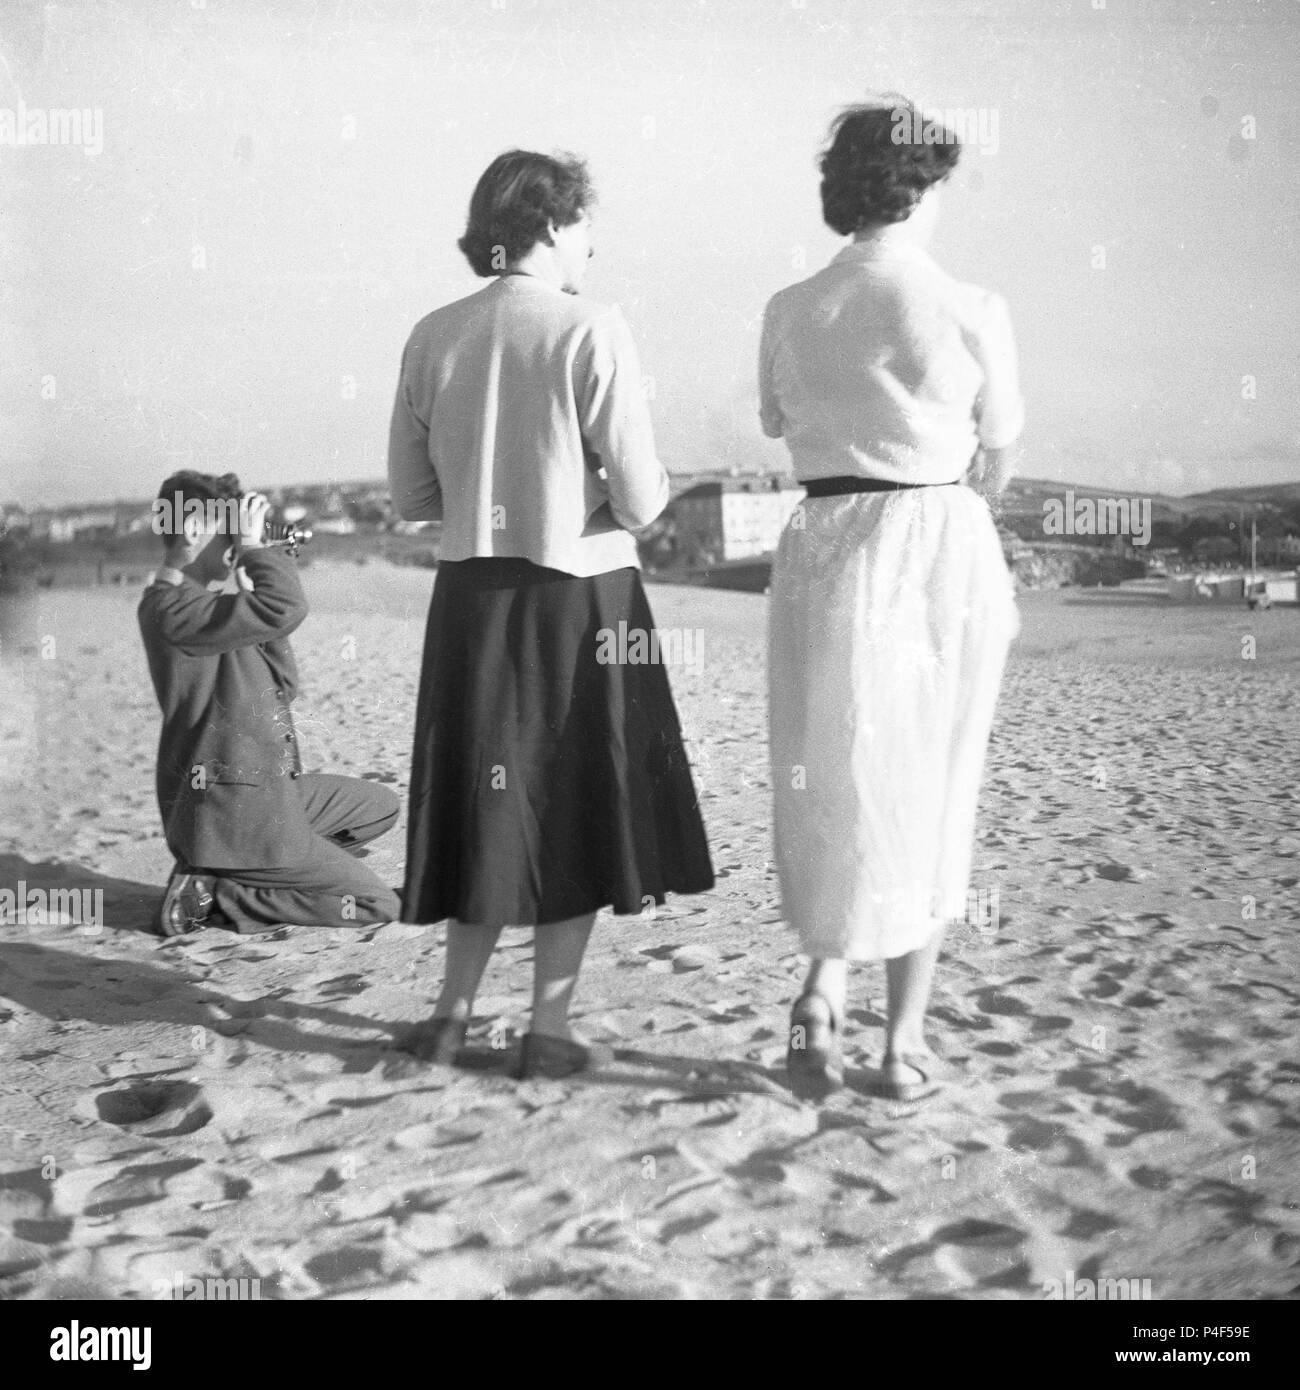 1950s, two ladies standing together on a sandy beach, while a gentleman kneeling down takes a photograph with his film camera (bellow), England, UK. - Stock Image